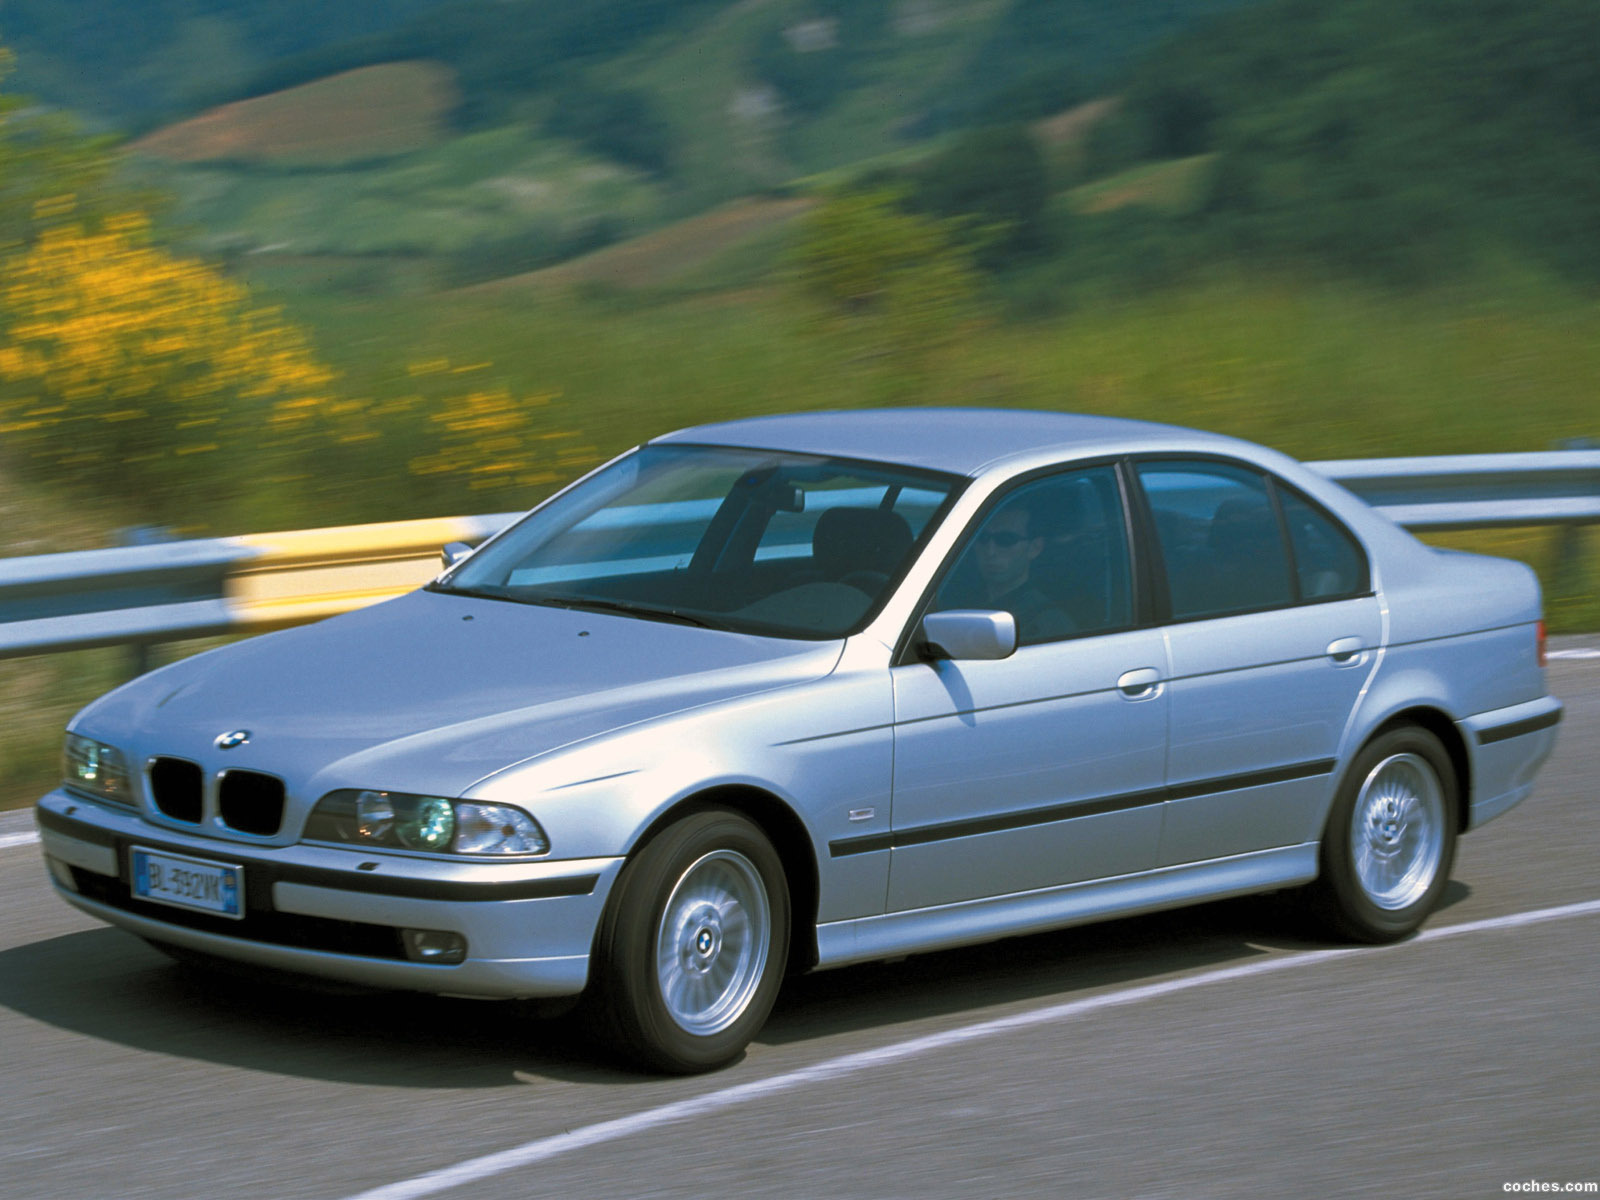 BMW 5 series 530i 2000 photo - 7